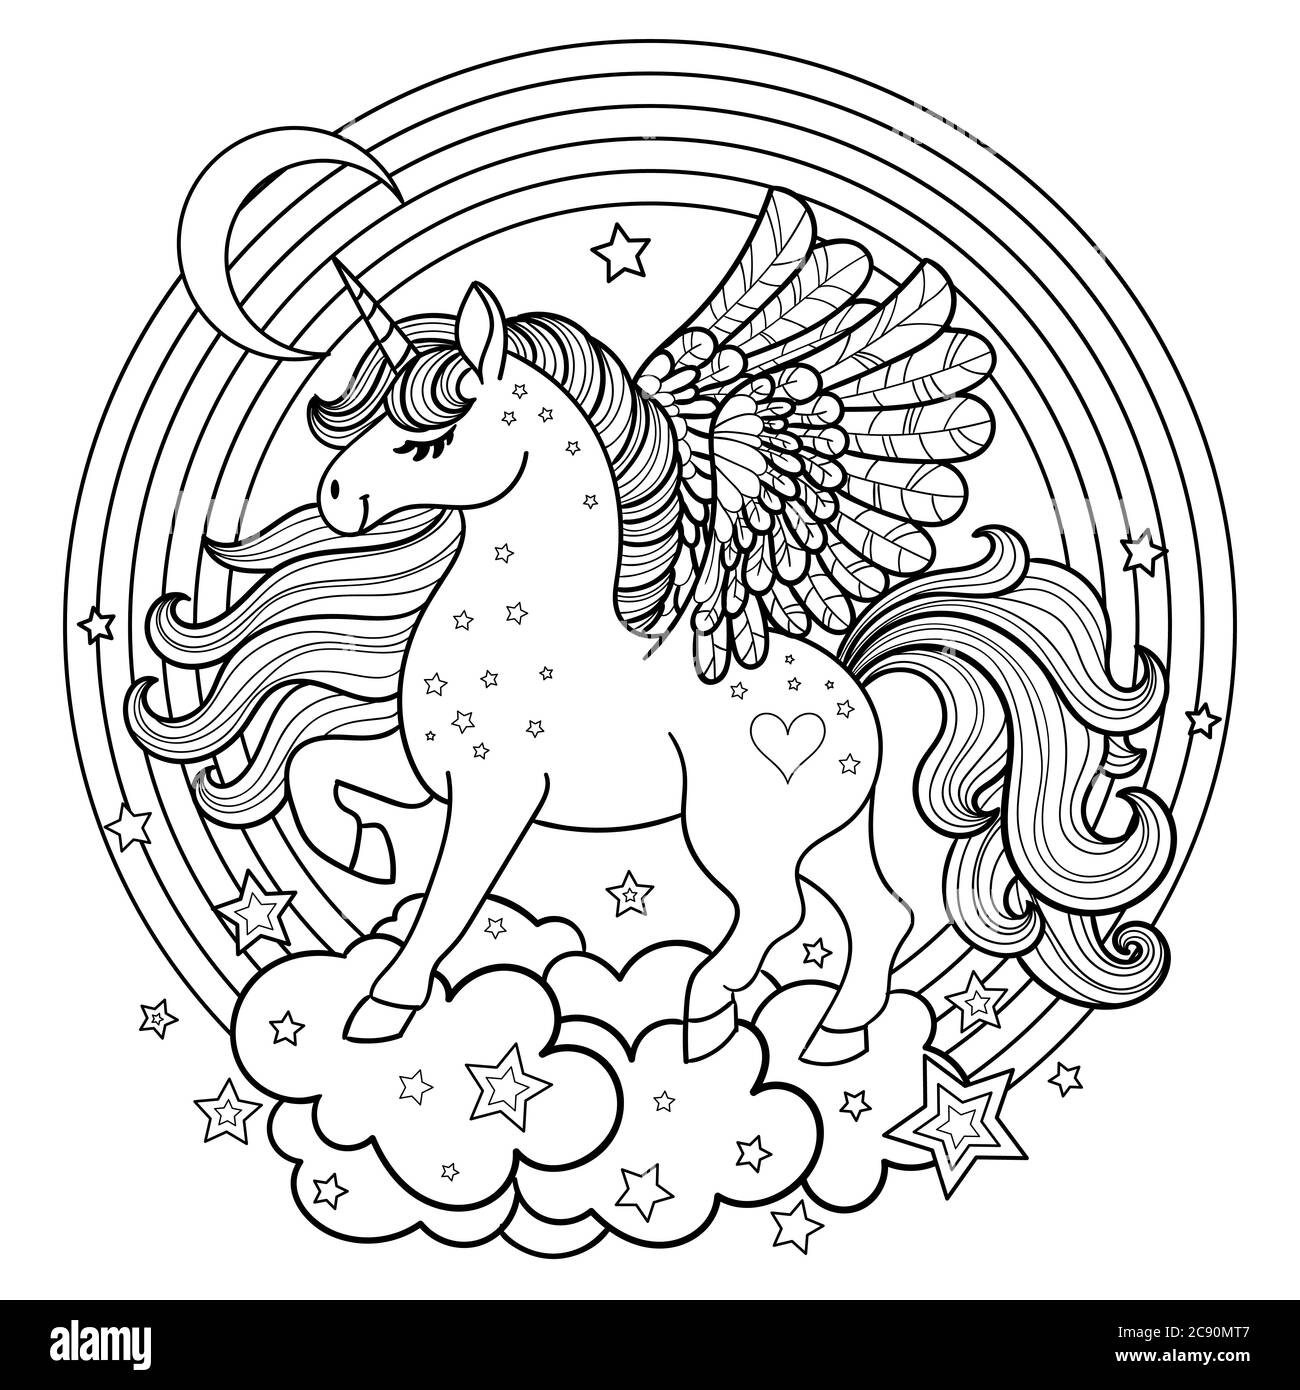 Cute Cartoon Unicorn In A Round Rainbow Black And White Image For The Design Of Coloring Books Prints Posters Cards Tattoos Vector Stock Art Alamy